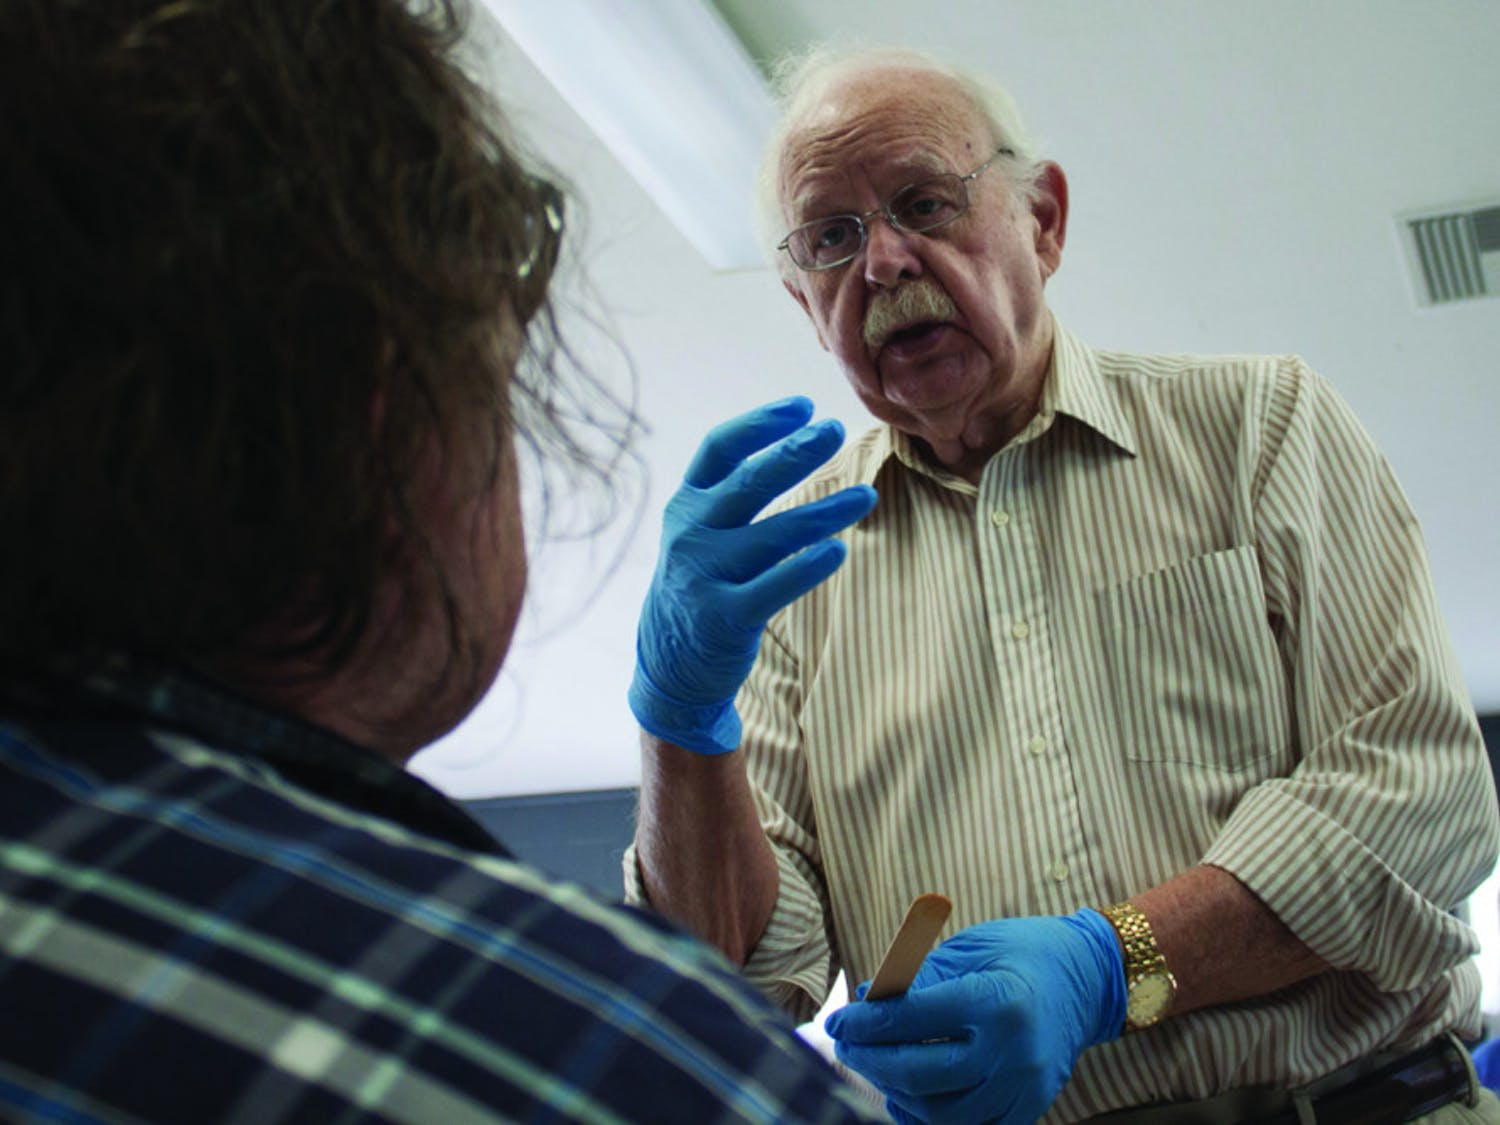 Dr. Fred West examines a patient, who complains of pain in the mouth after having his teeth removed, at an open wound clinic in Grace Marketplace on March 27.